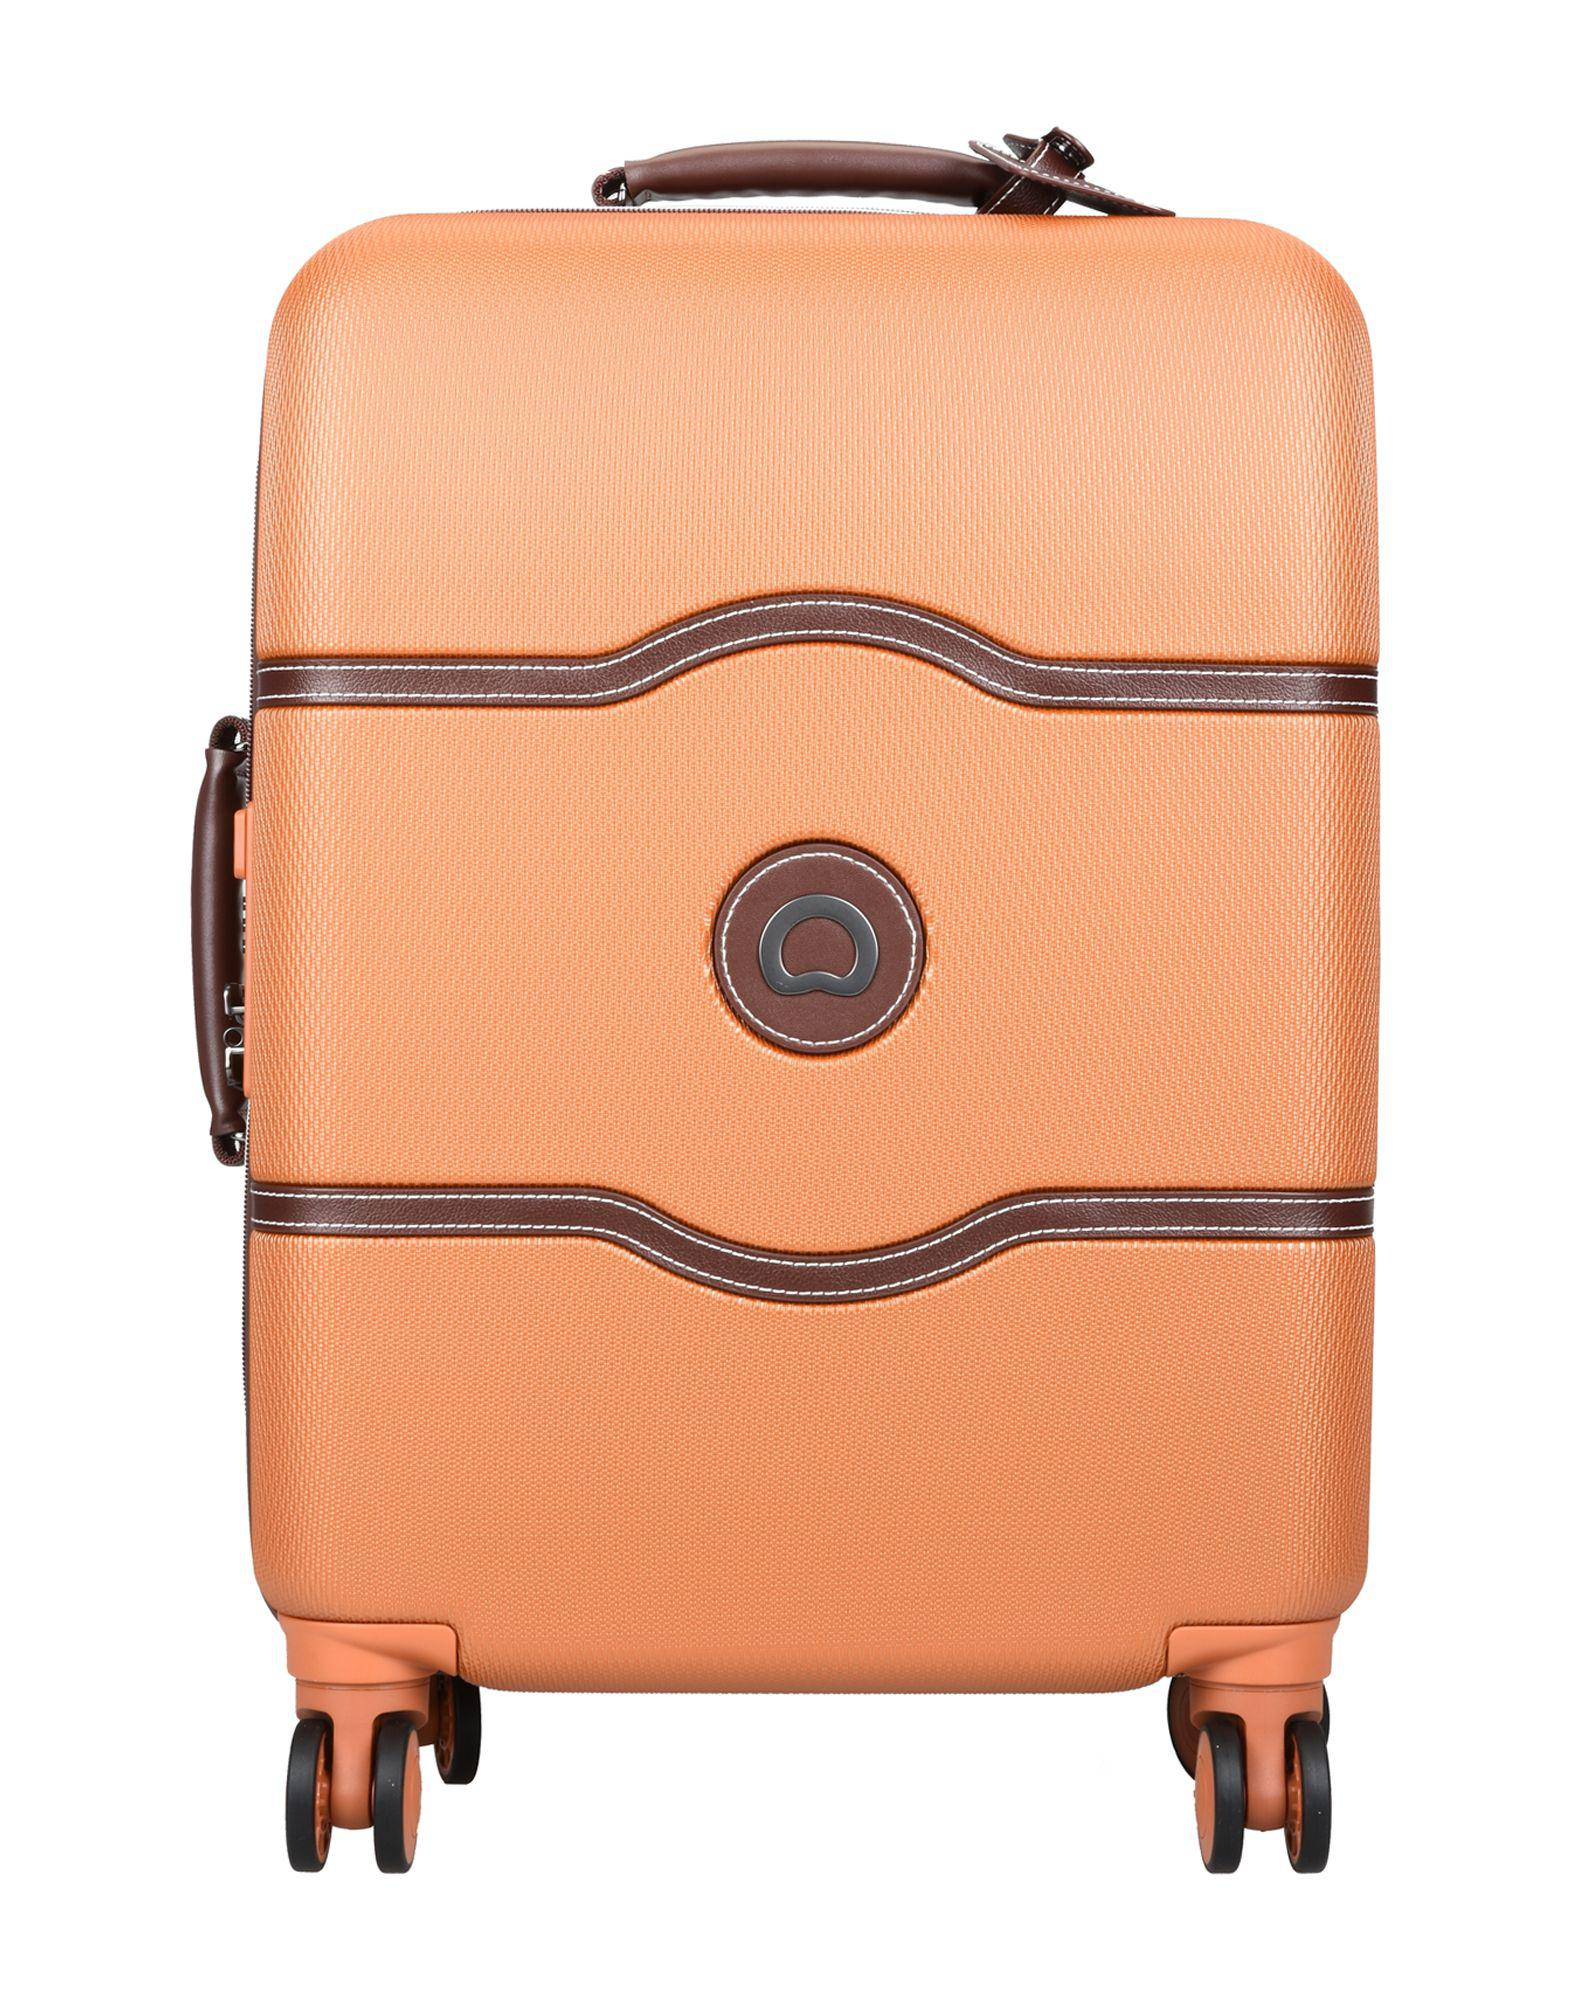 2c5f7f487 Delsey Wheeled luggage in Orange for Men - Lyst